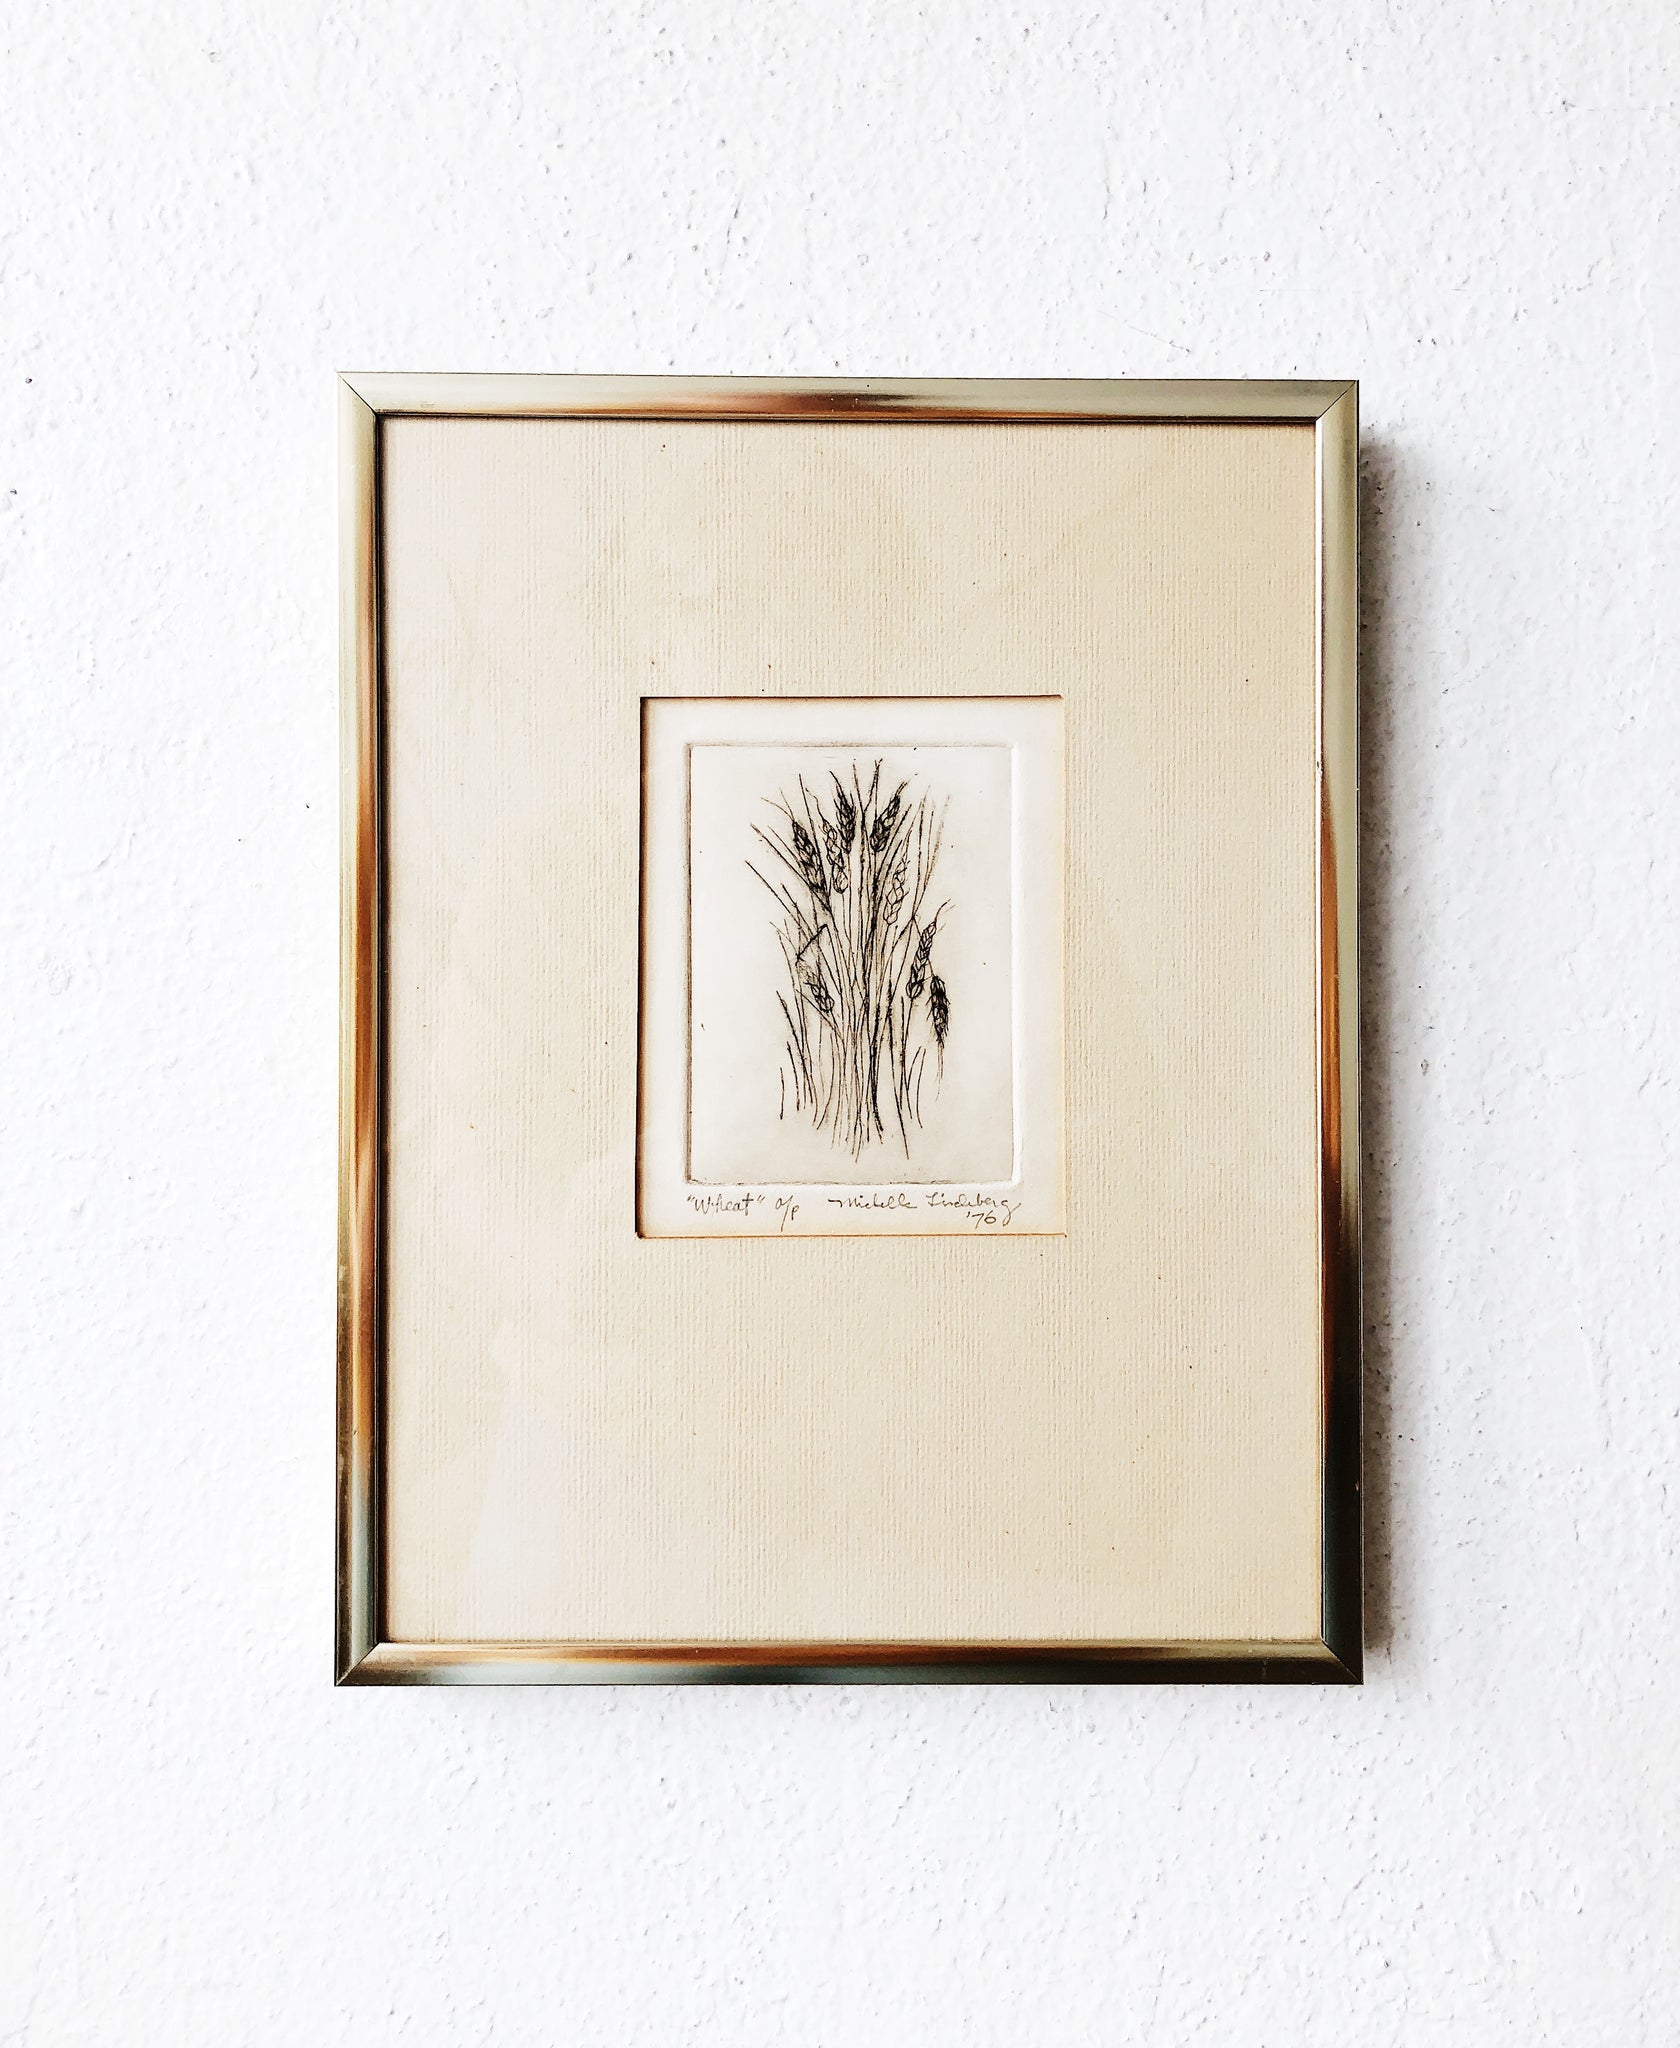 Vintage Original Framed Etching